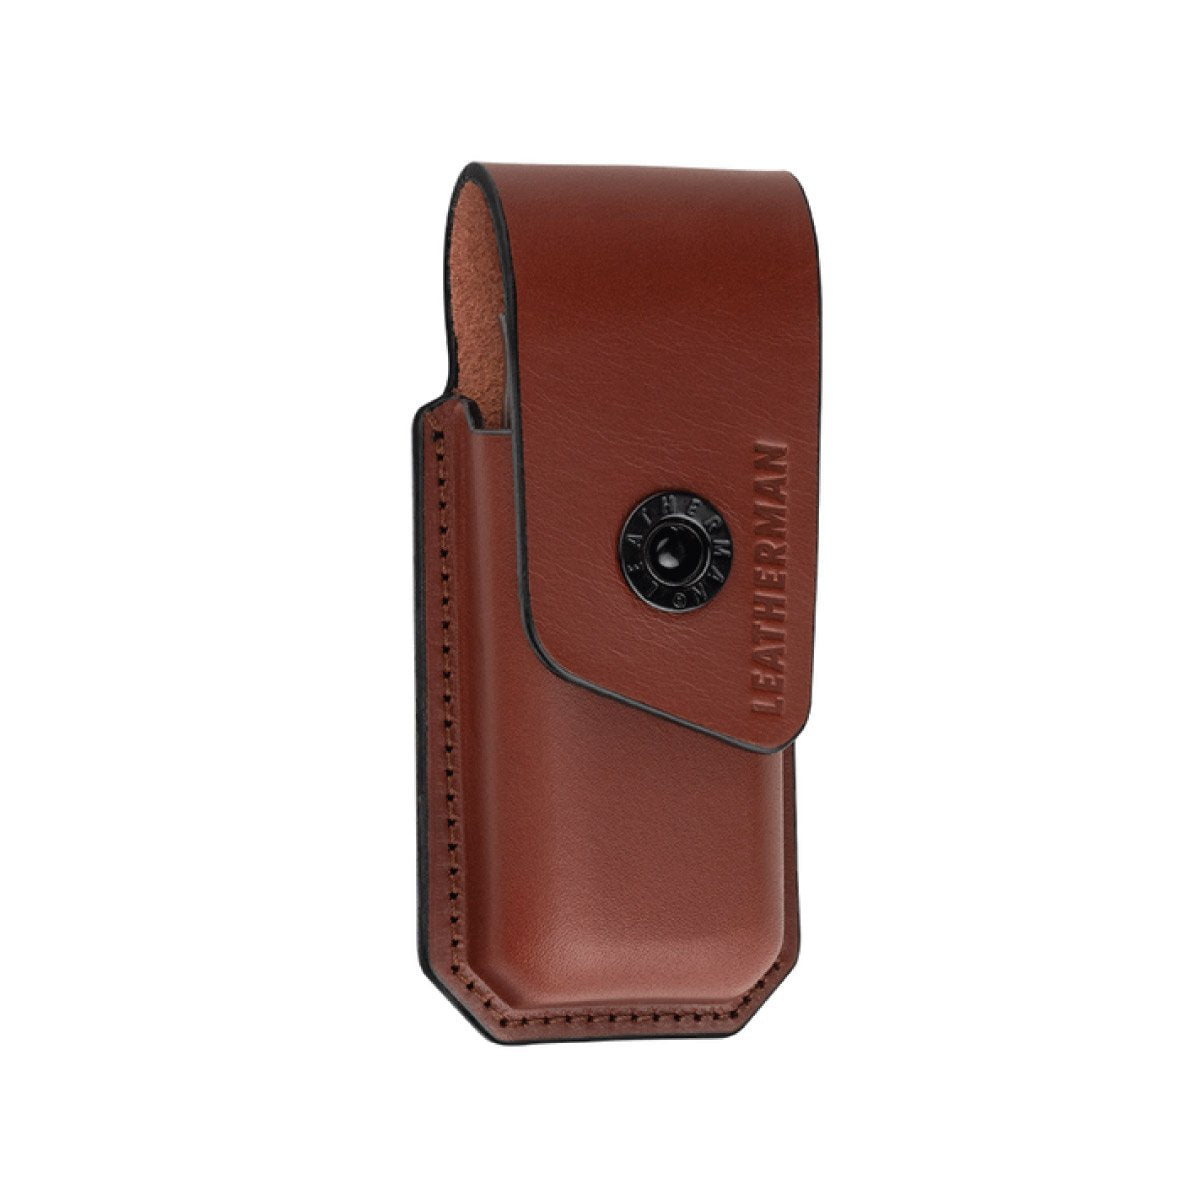 Leatherman Ainsworth Premium Leather Sheath Large Tactical Gear Australia Supplier Distributor Dealer